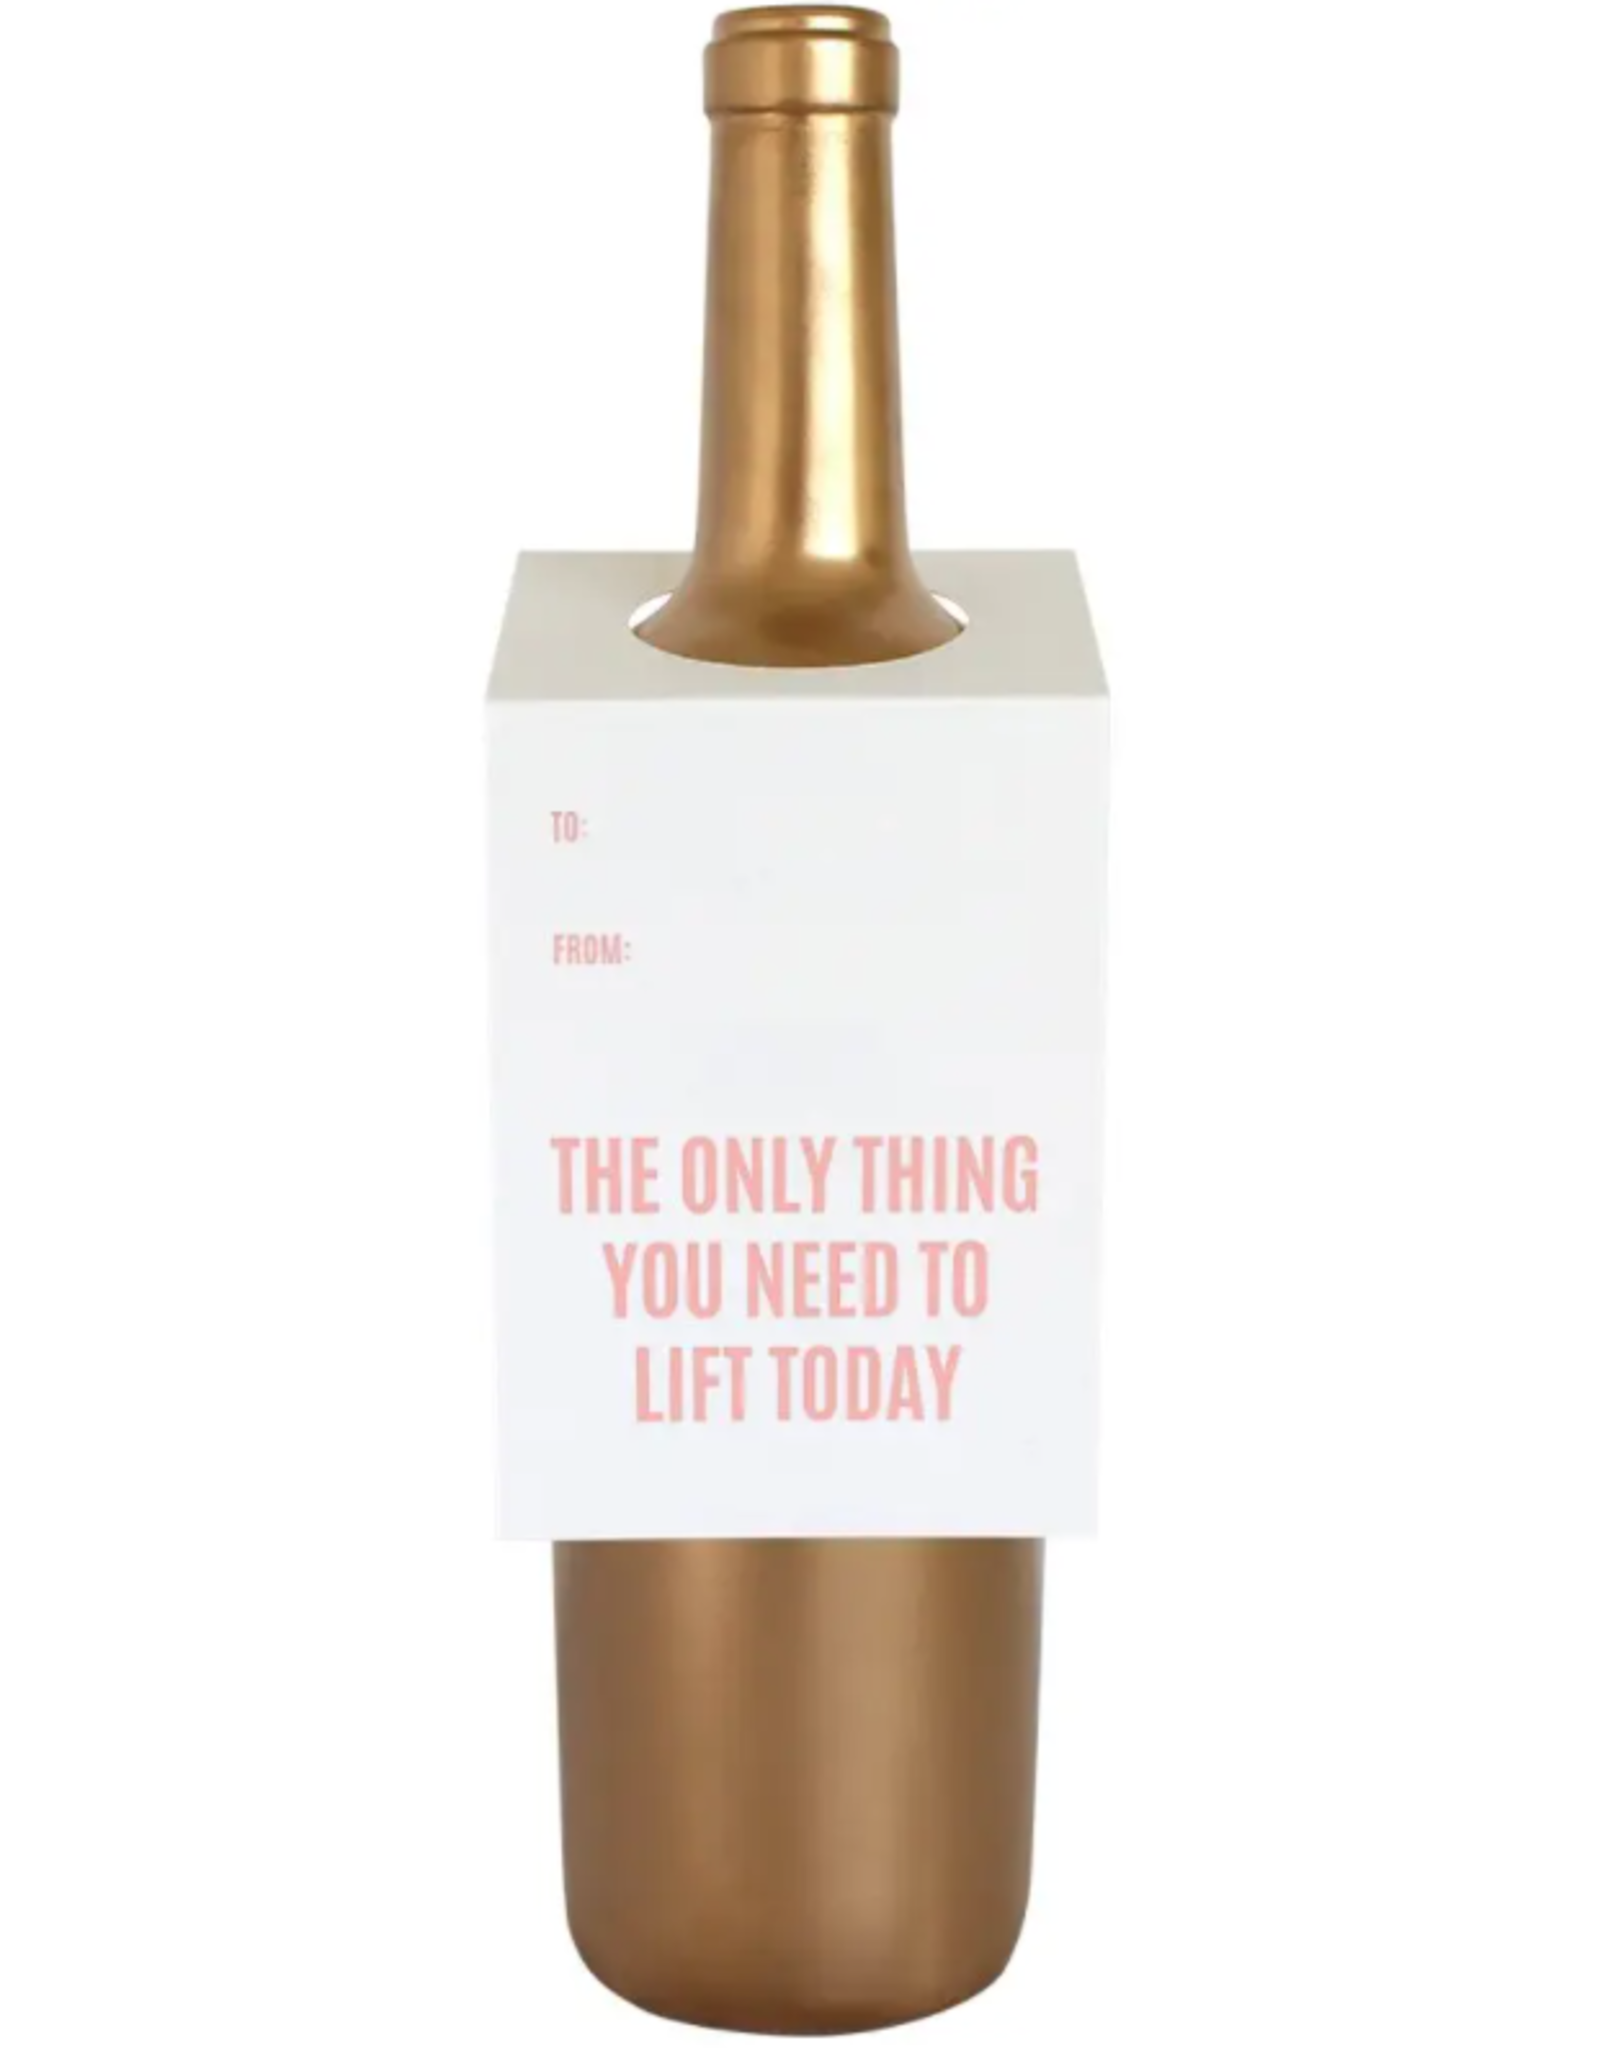 Only Thing You Need to Lift Today Wine & Spirit Tag